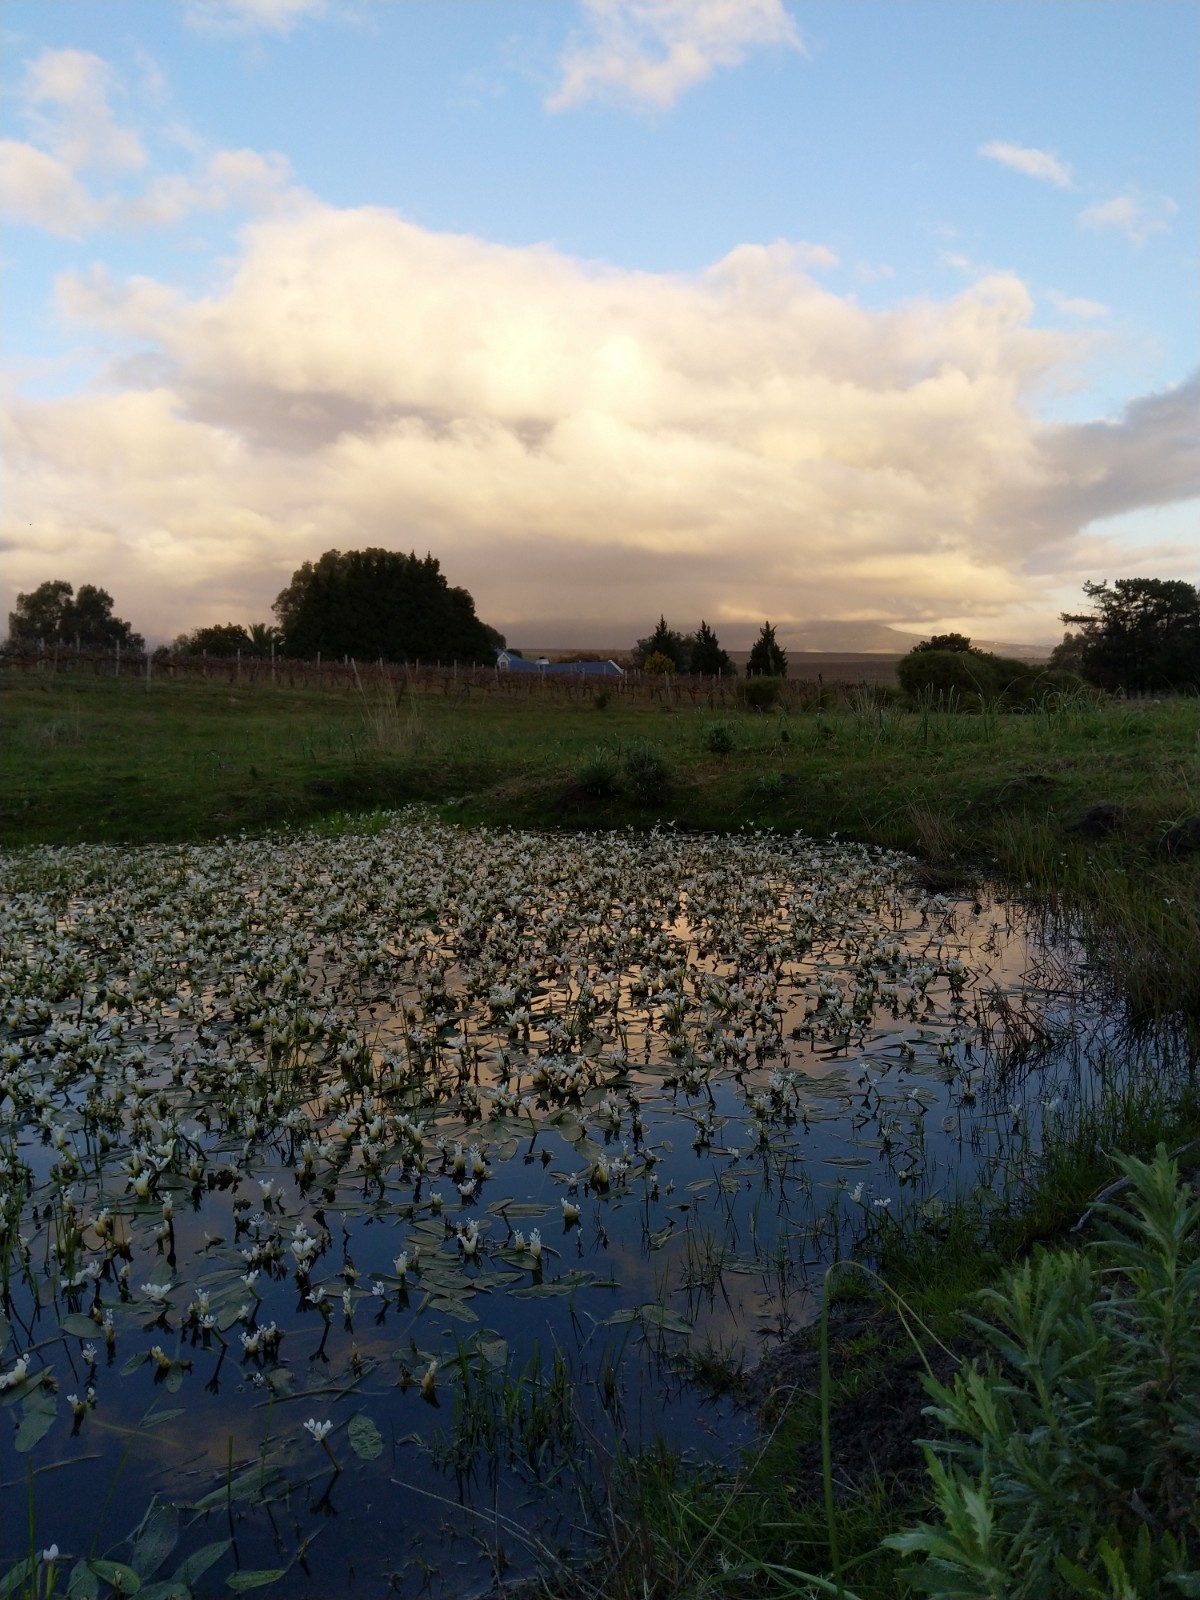 More waterblommetjies, a whole pond. These are edible and make a delicious traditional Cape lamb stew ingredient.